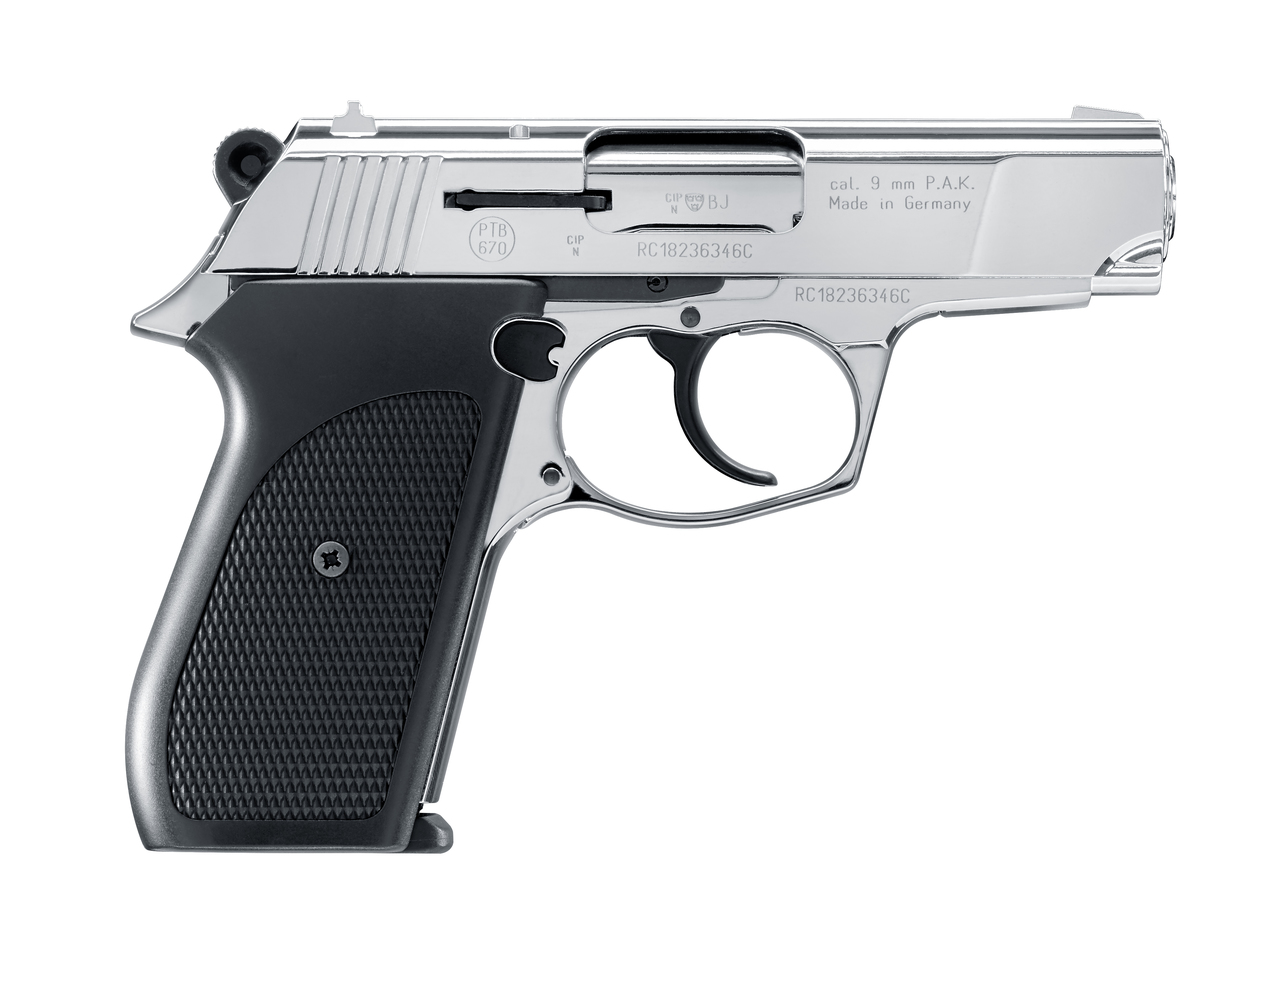 Rohm RG-88 9mm P.A.K. Blank Pistol -Polished Chrome